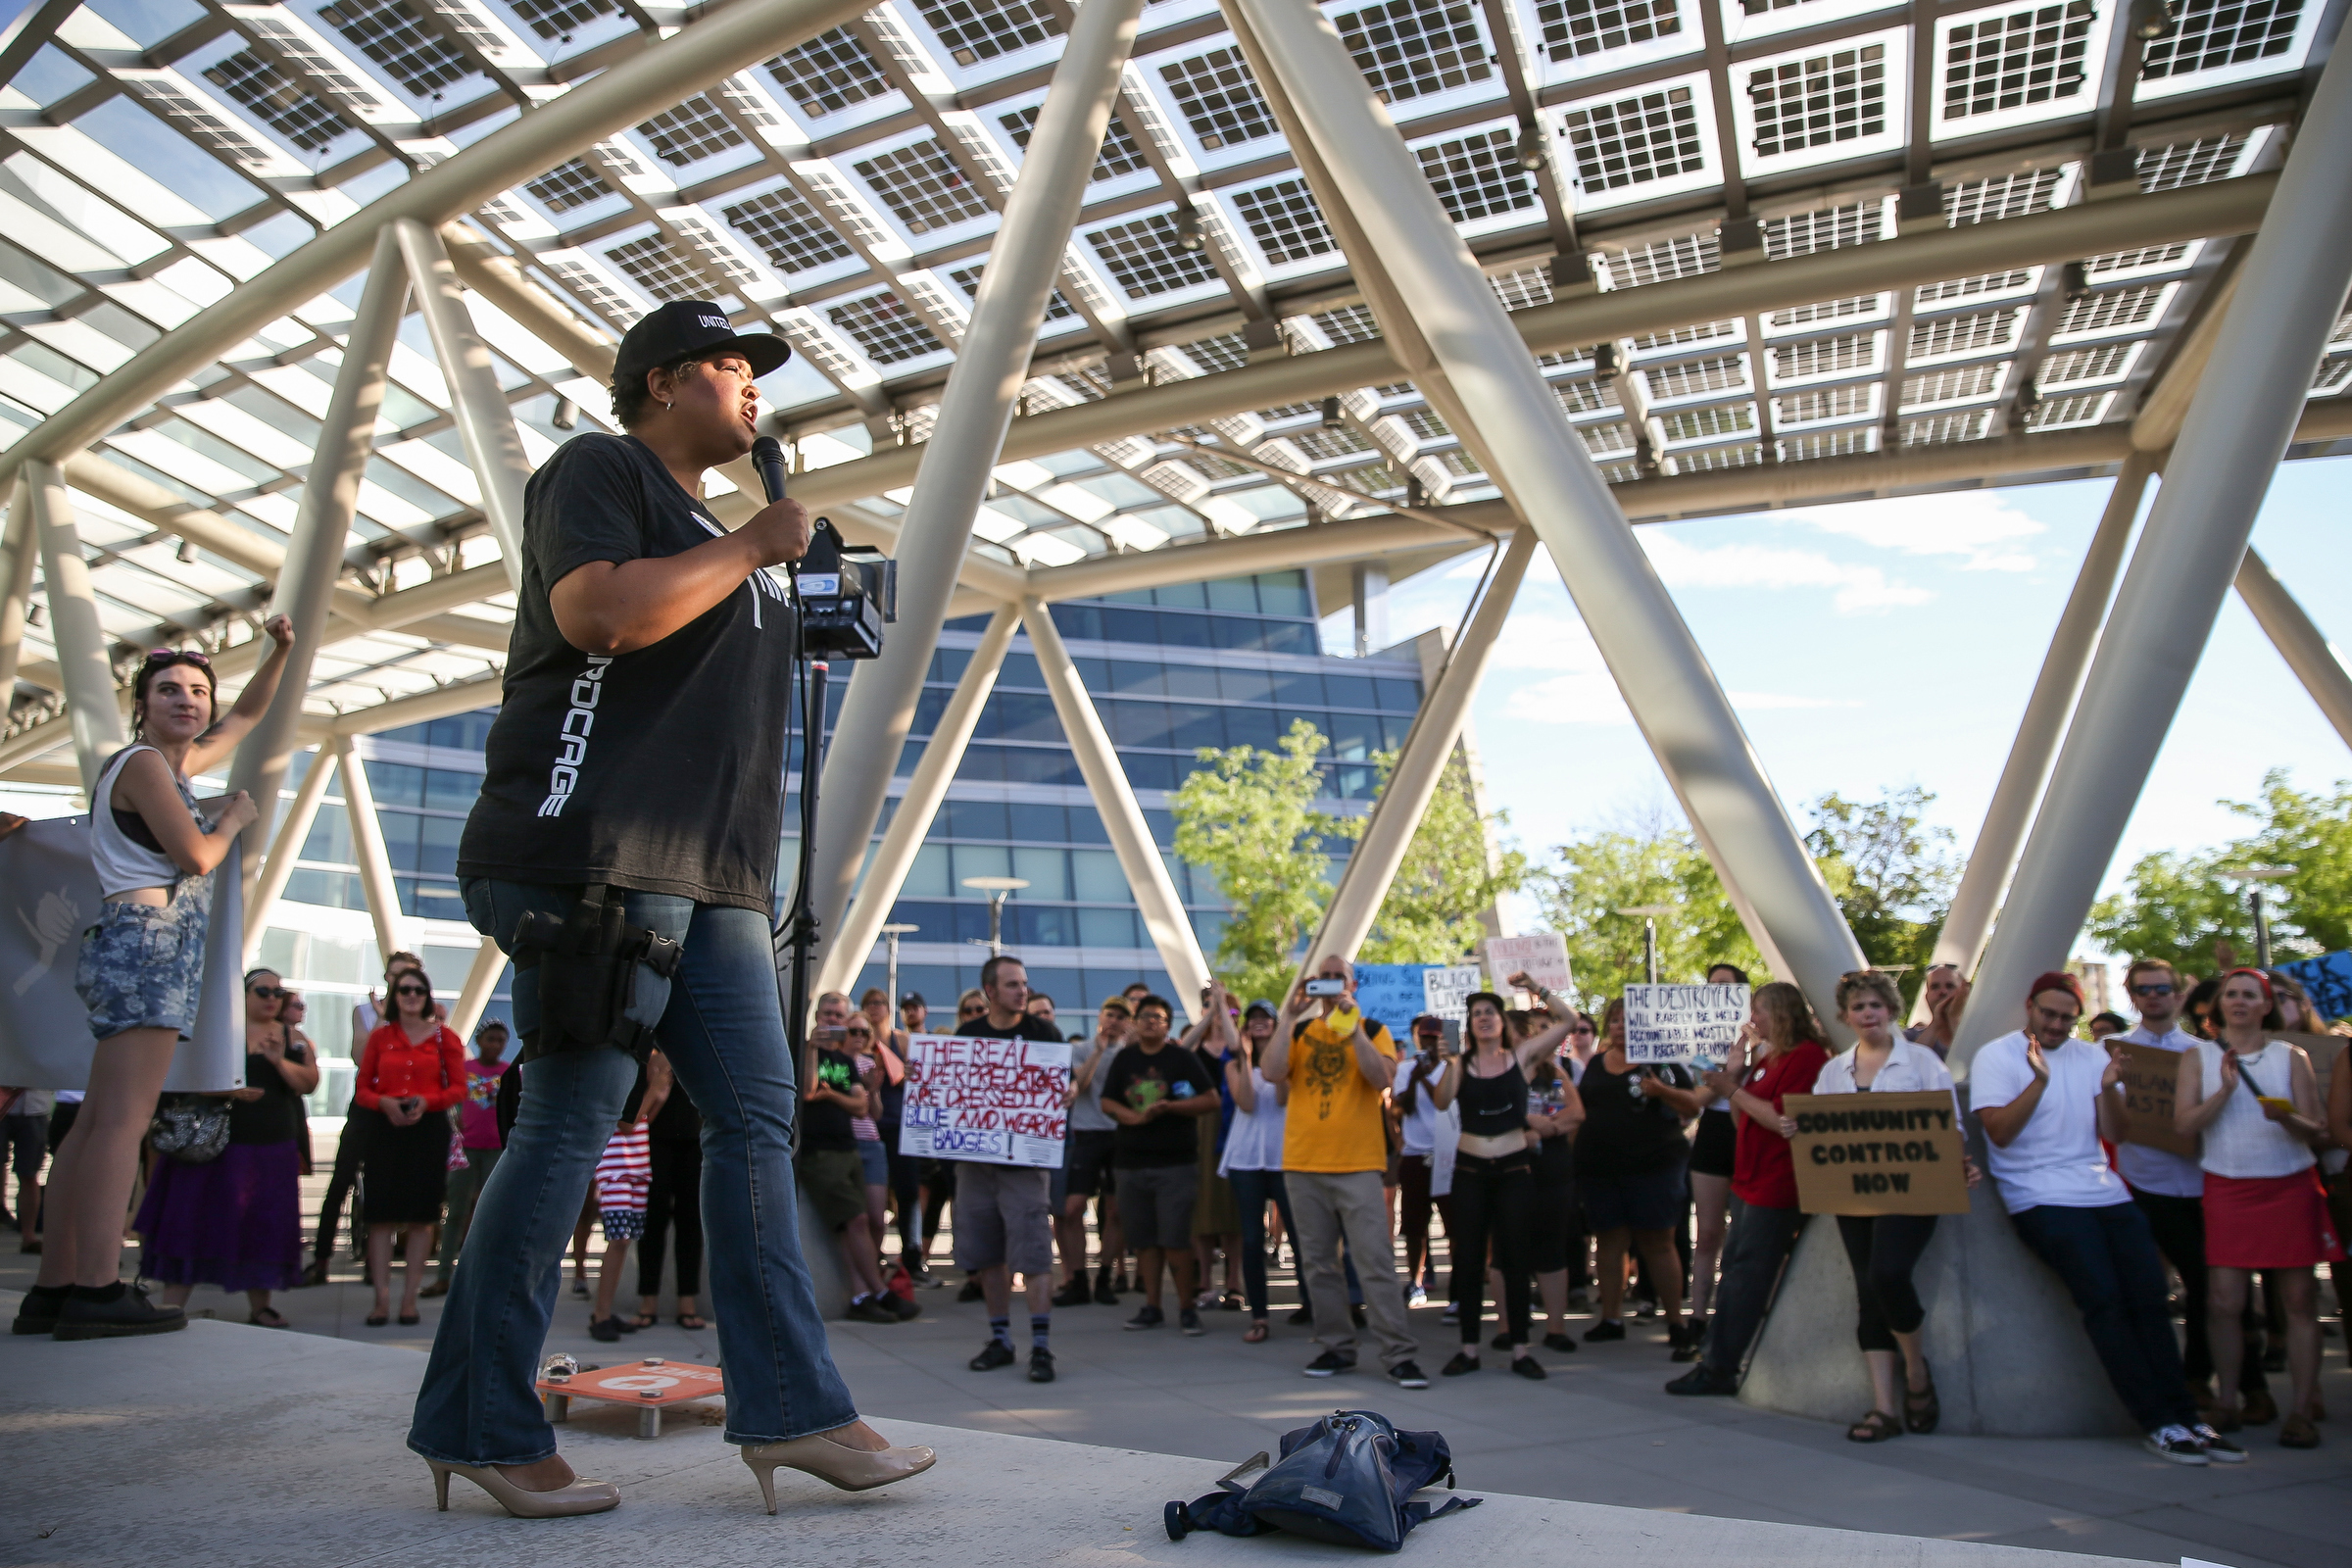 Lex Scott speaks at a Utah Against Police Brutality rally outside the Salt Lake City Public Safety Building on Saturday, July 9, 2016.